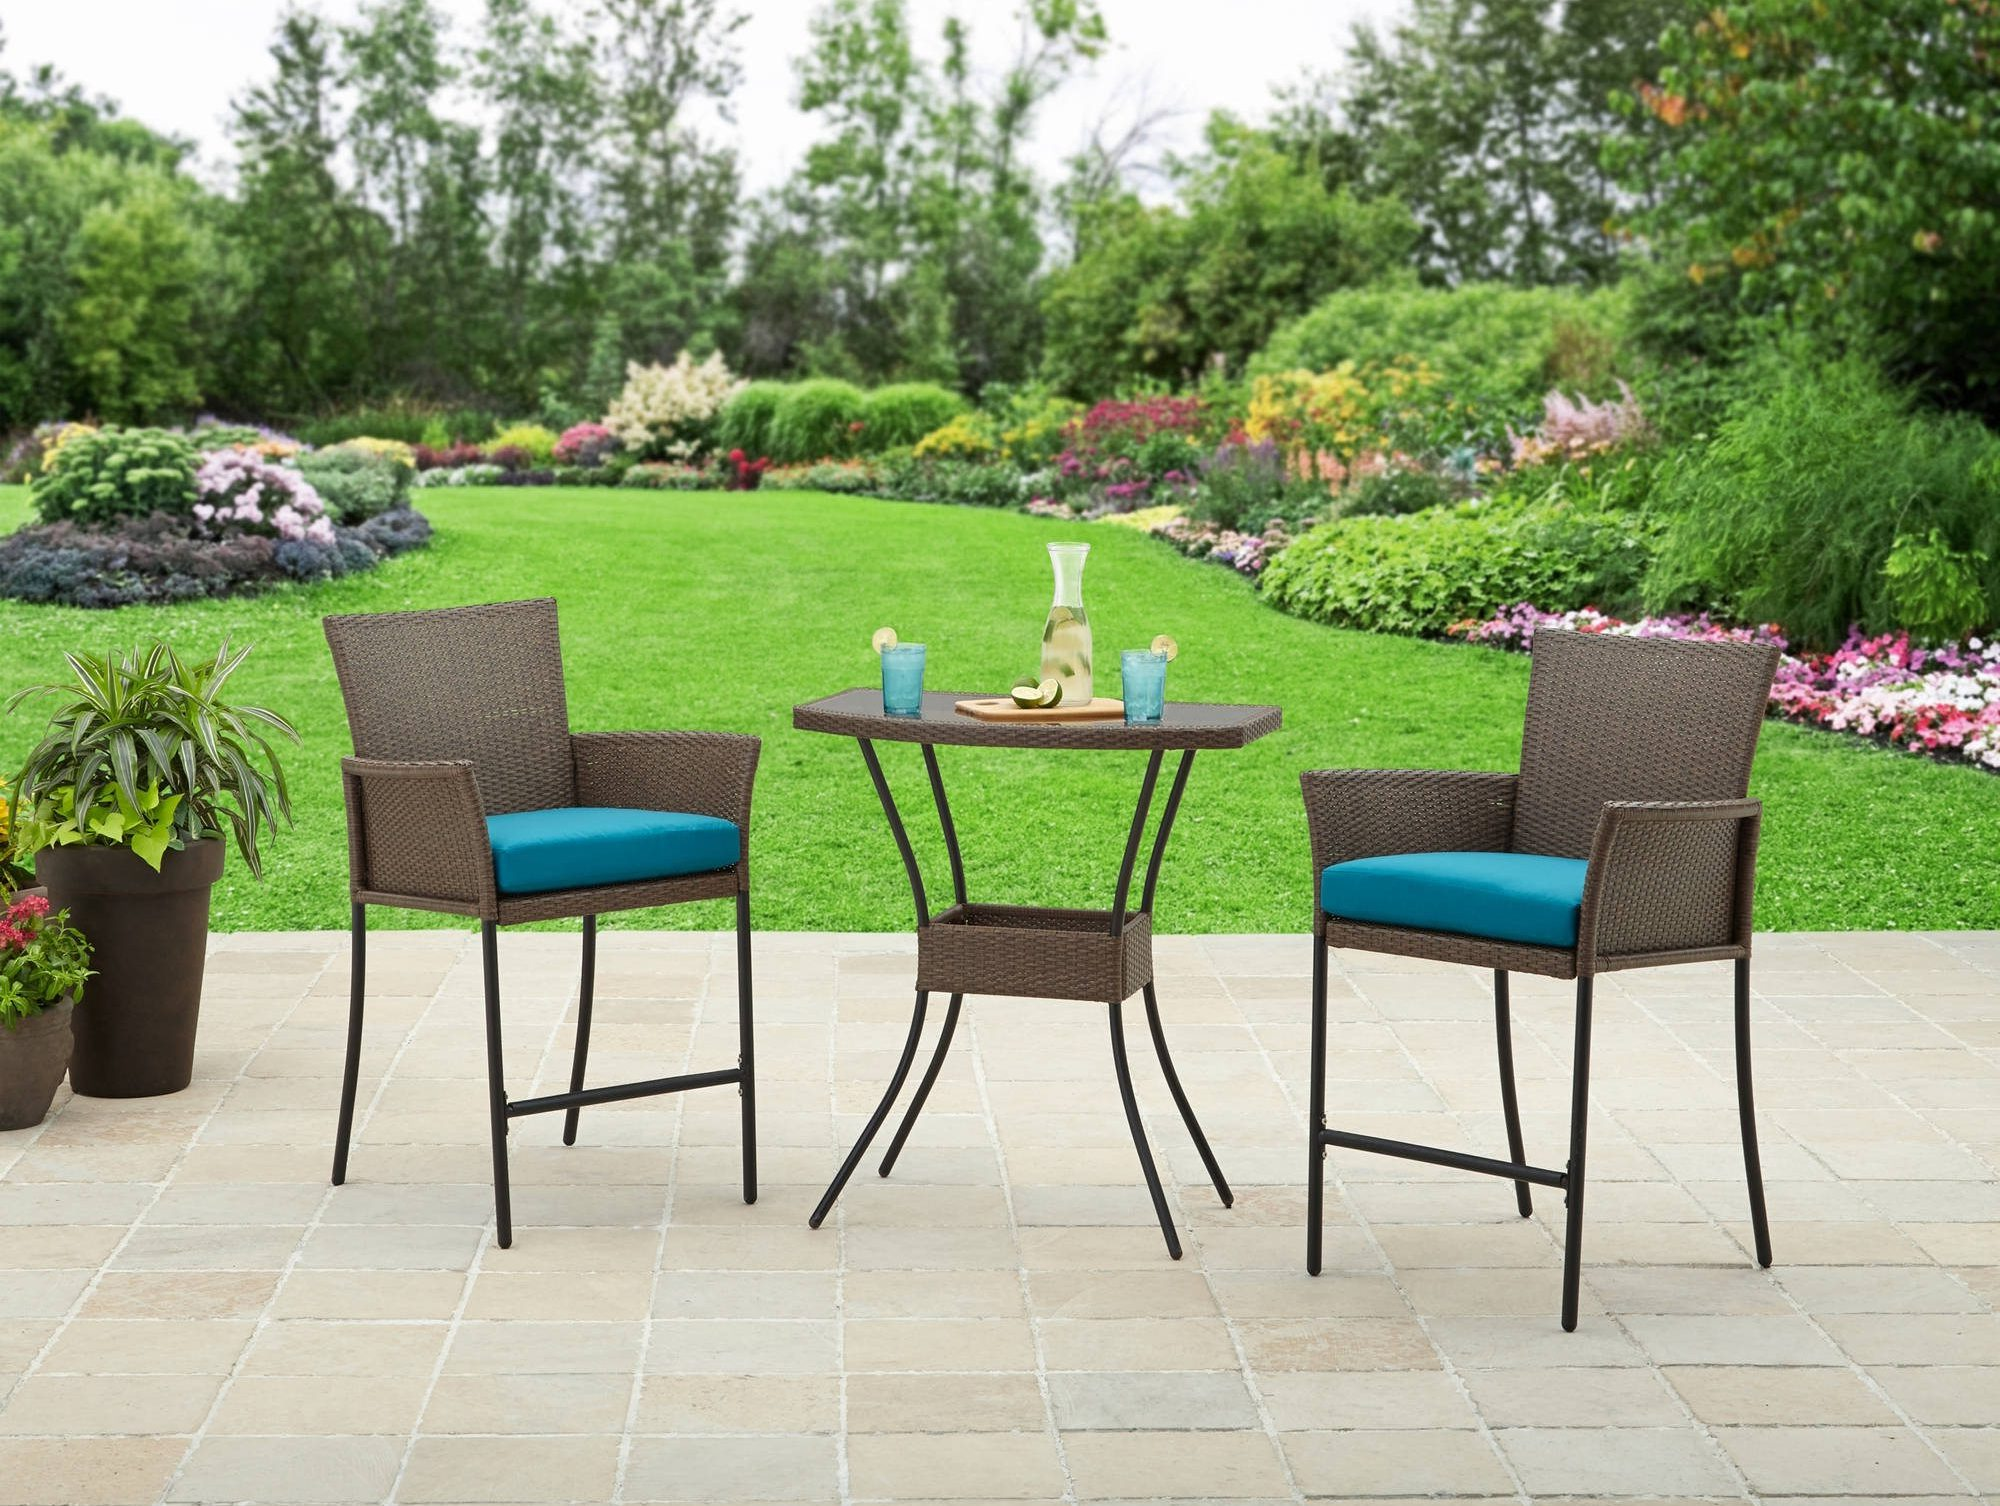 Art van outdoor furniture for perfect patio furnitures for Outdoor furniture designers